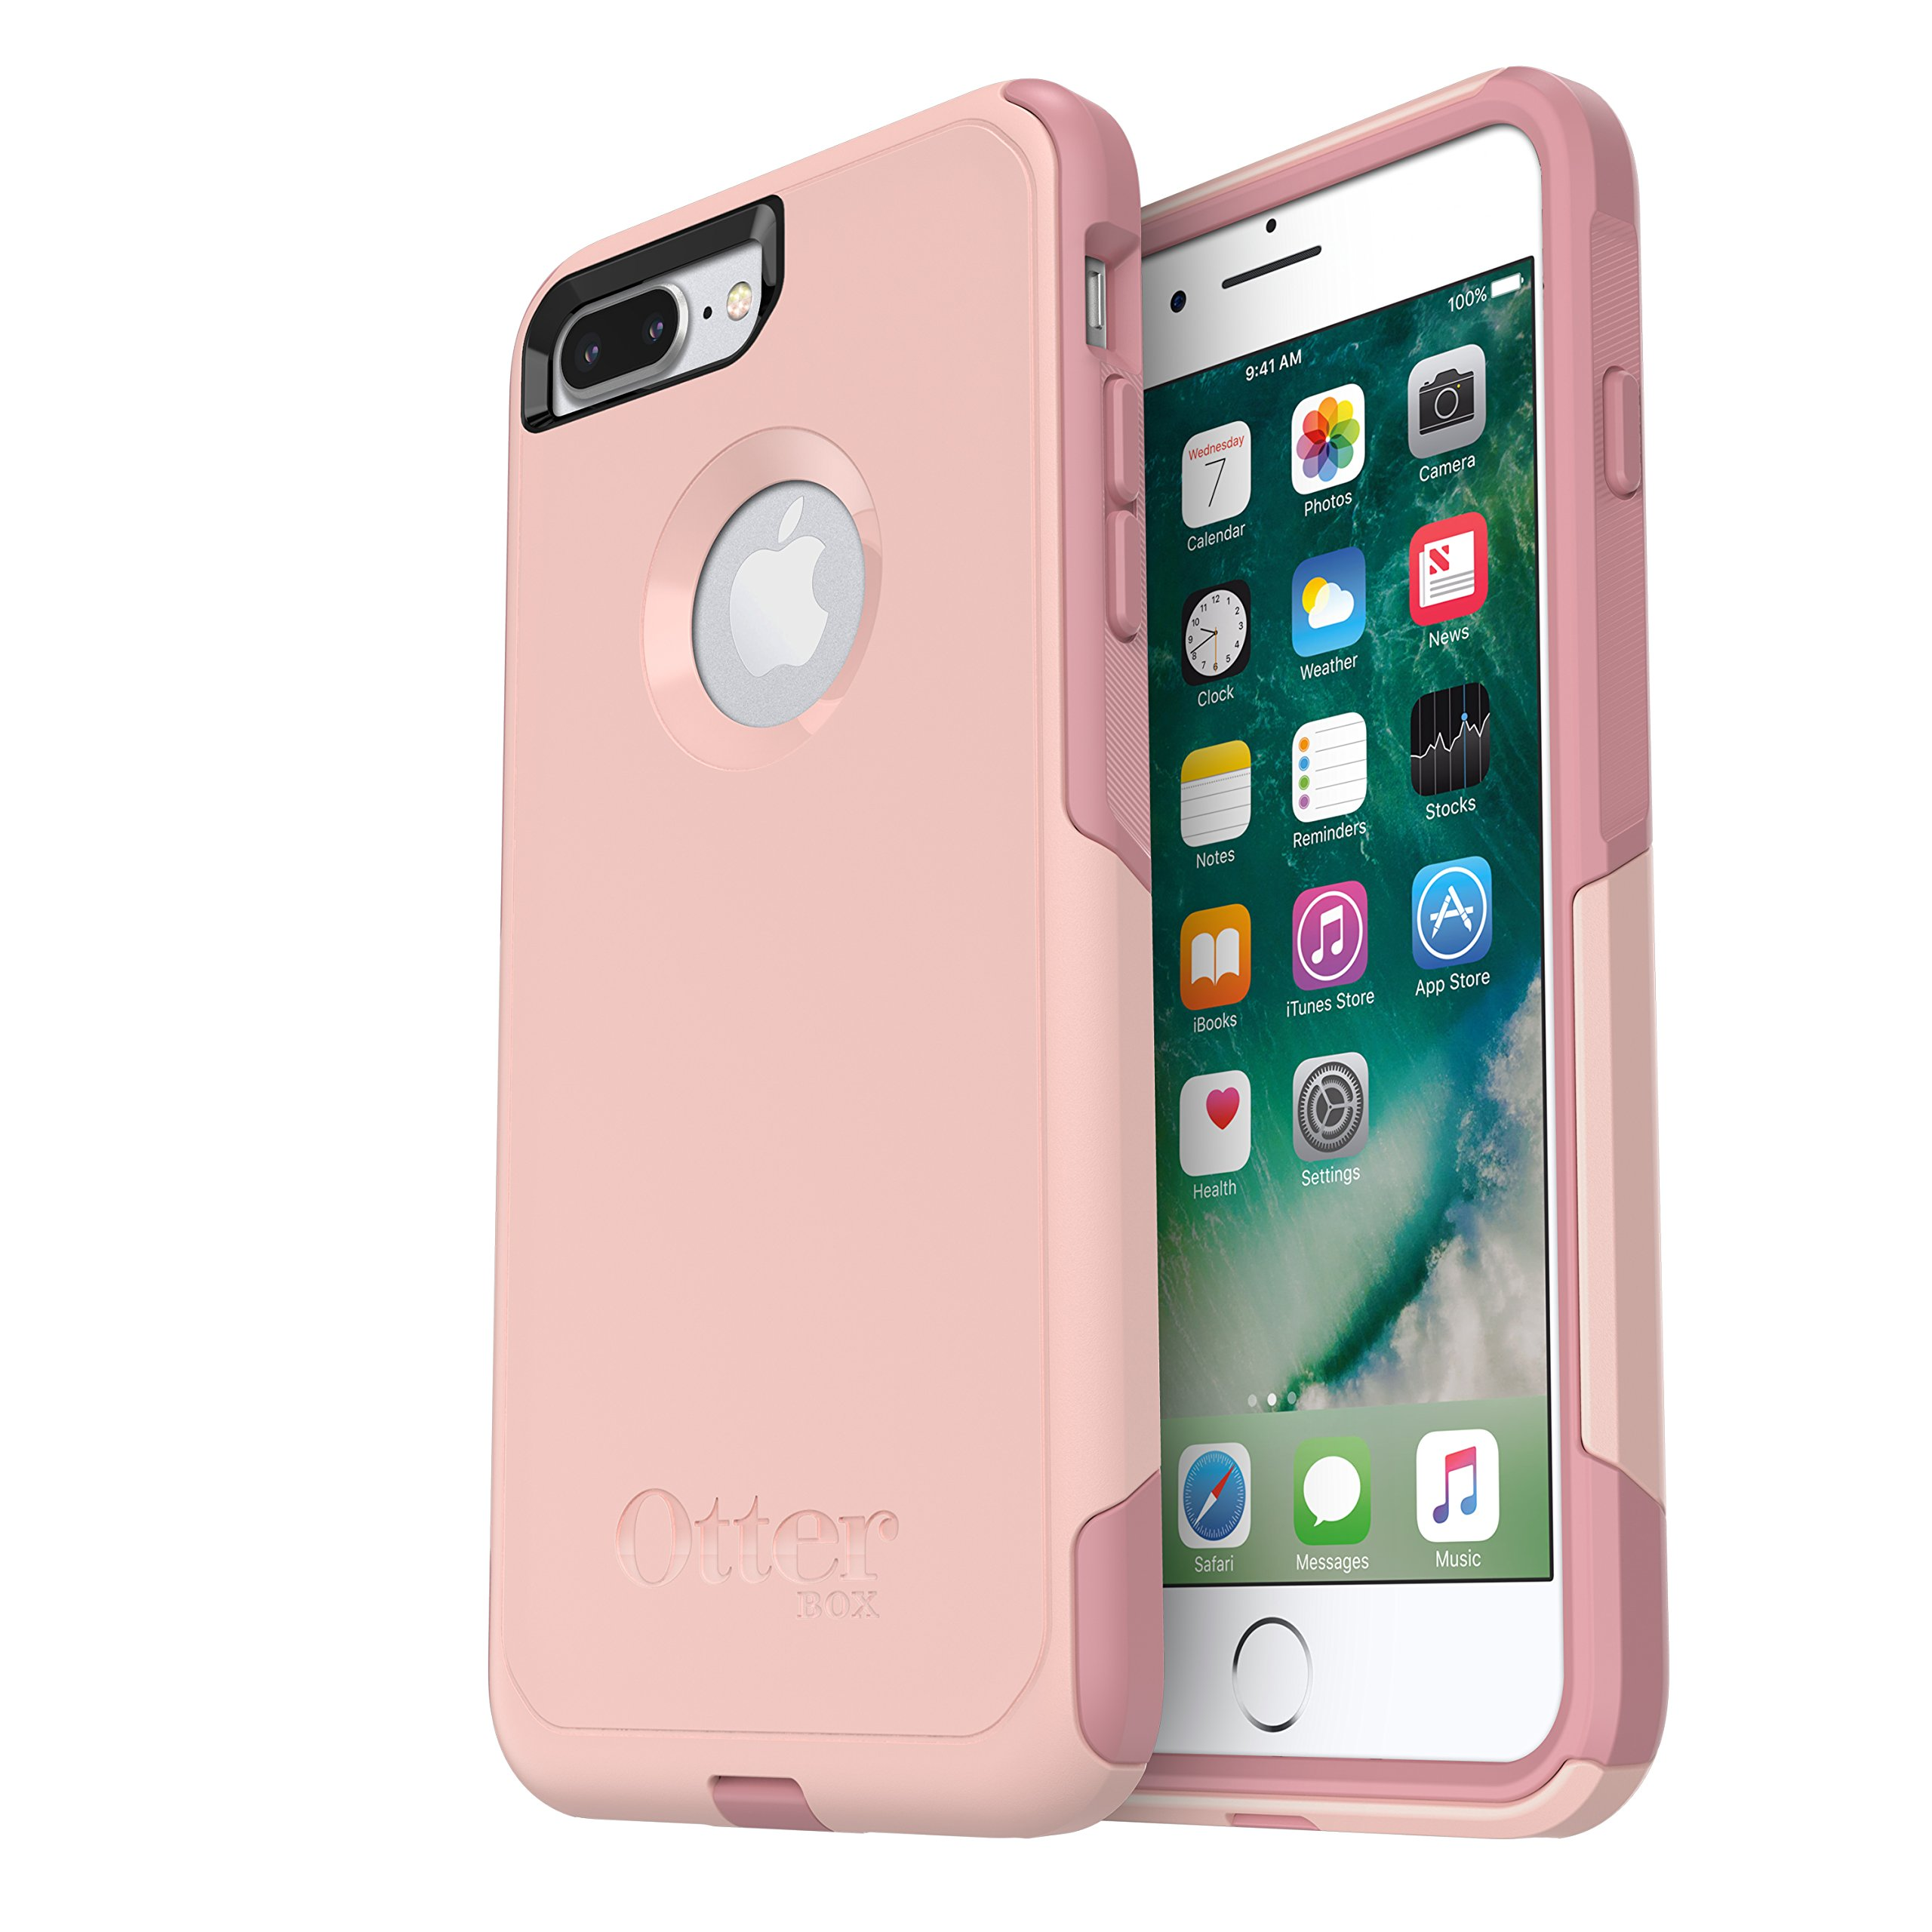 OtterBox COMMUTER SERIES Case for  iPhone 8 Plus & iPhone 7 Plus (ONLY) - Frustrations Free Packaging - BALLET WAY (PINK SALT/BLUSH)